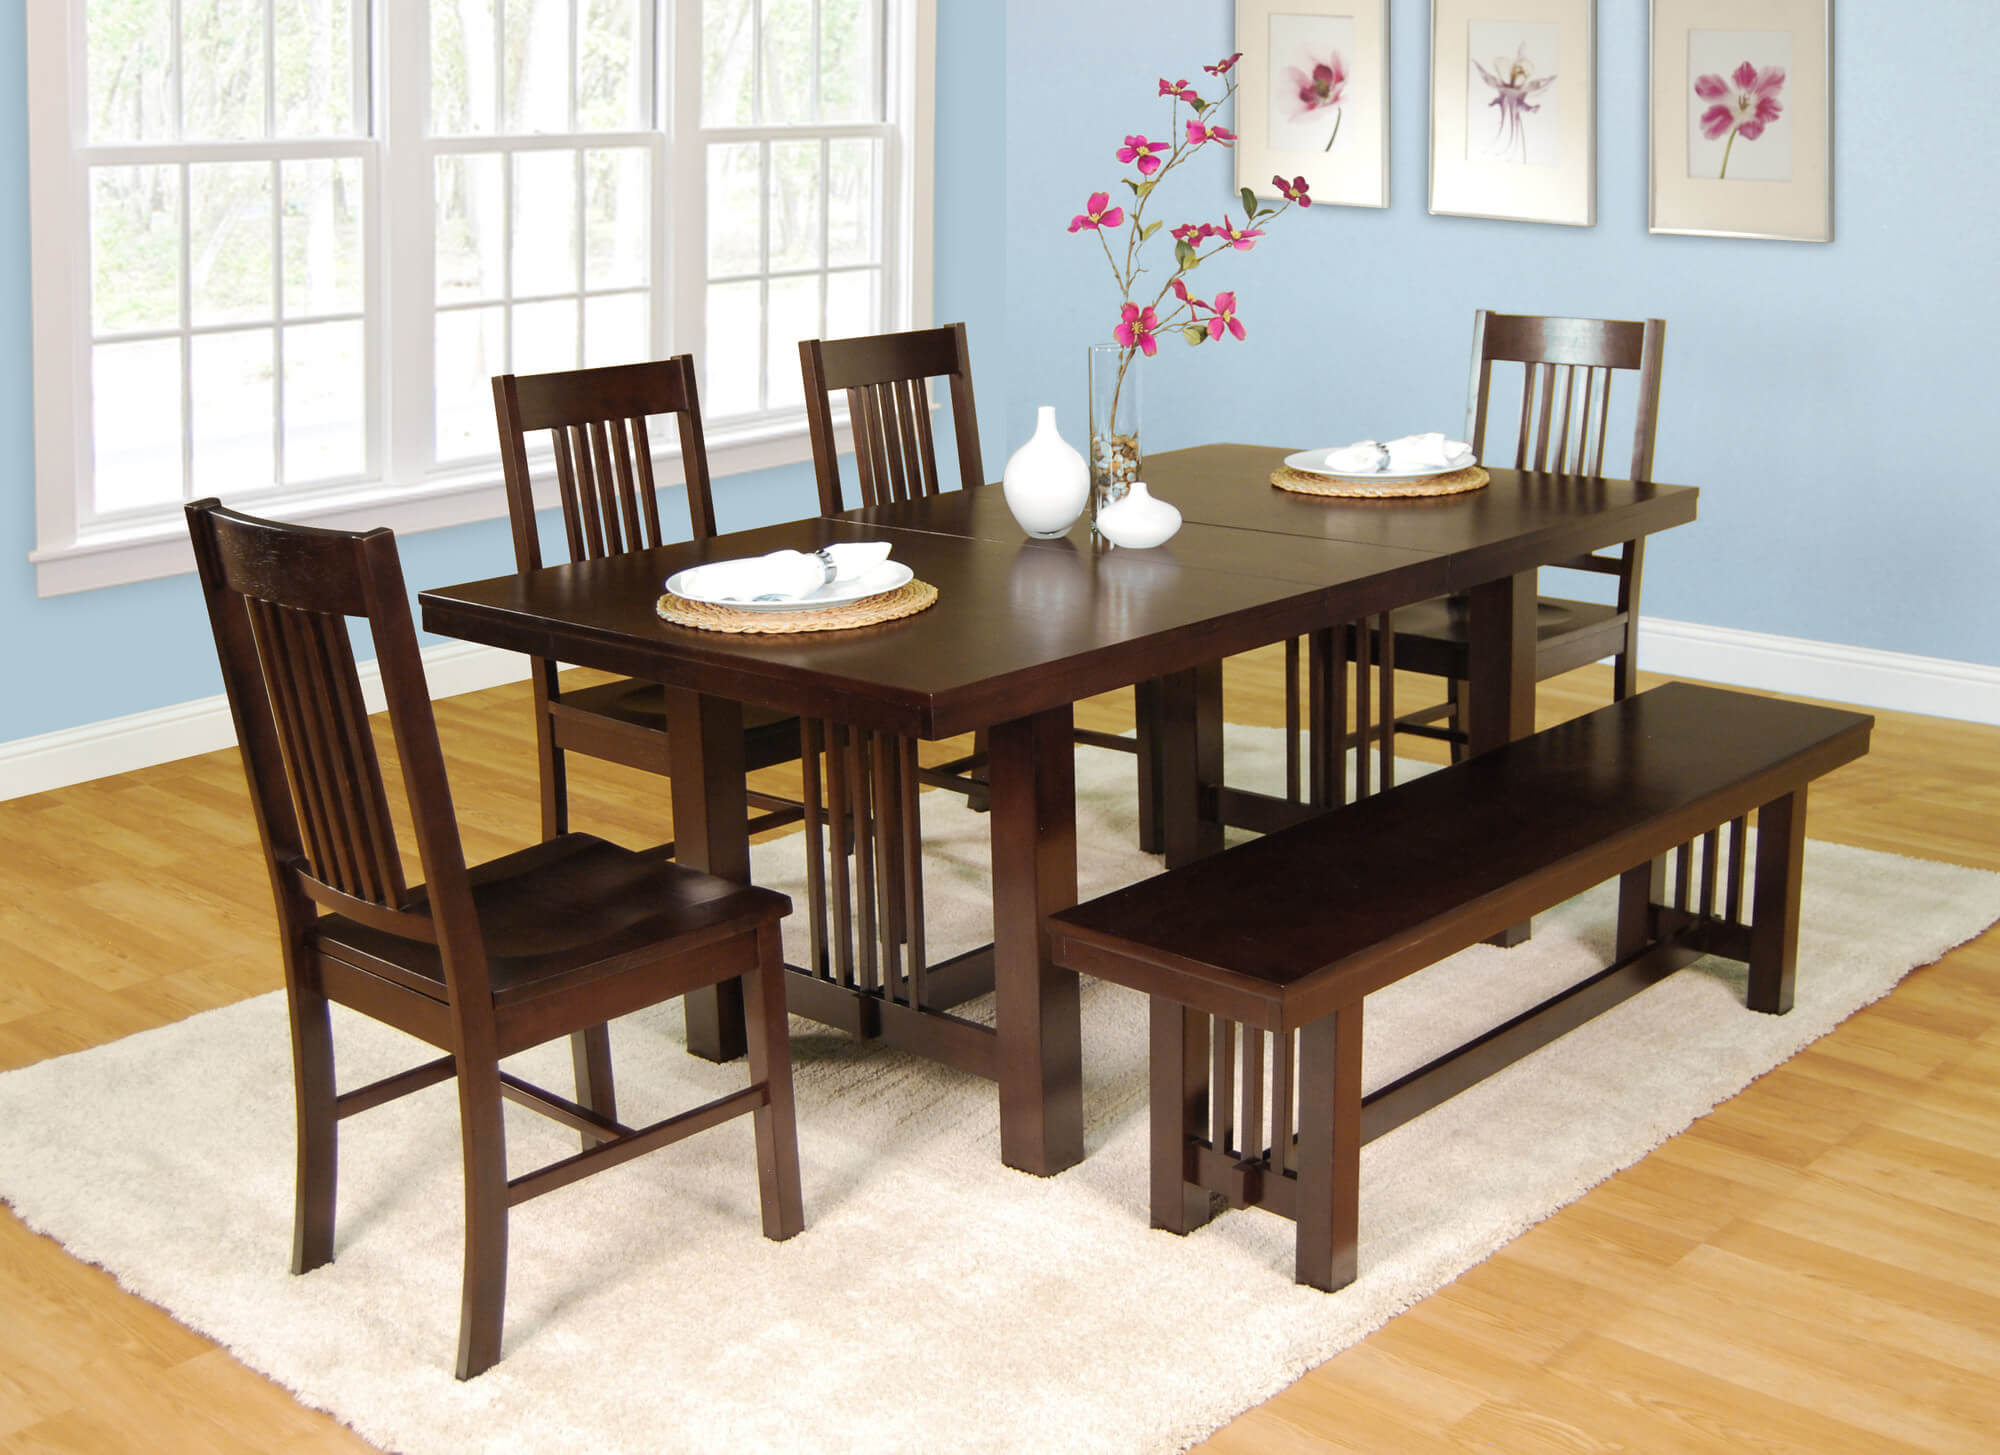 Dining Room Set With Bench And Chairs Best